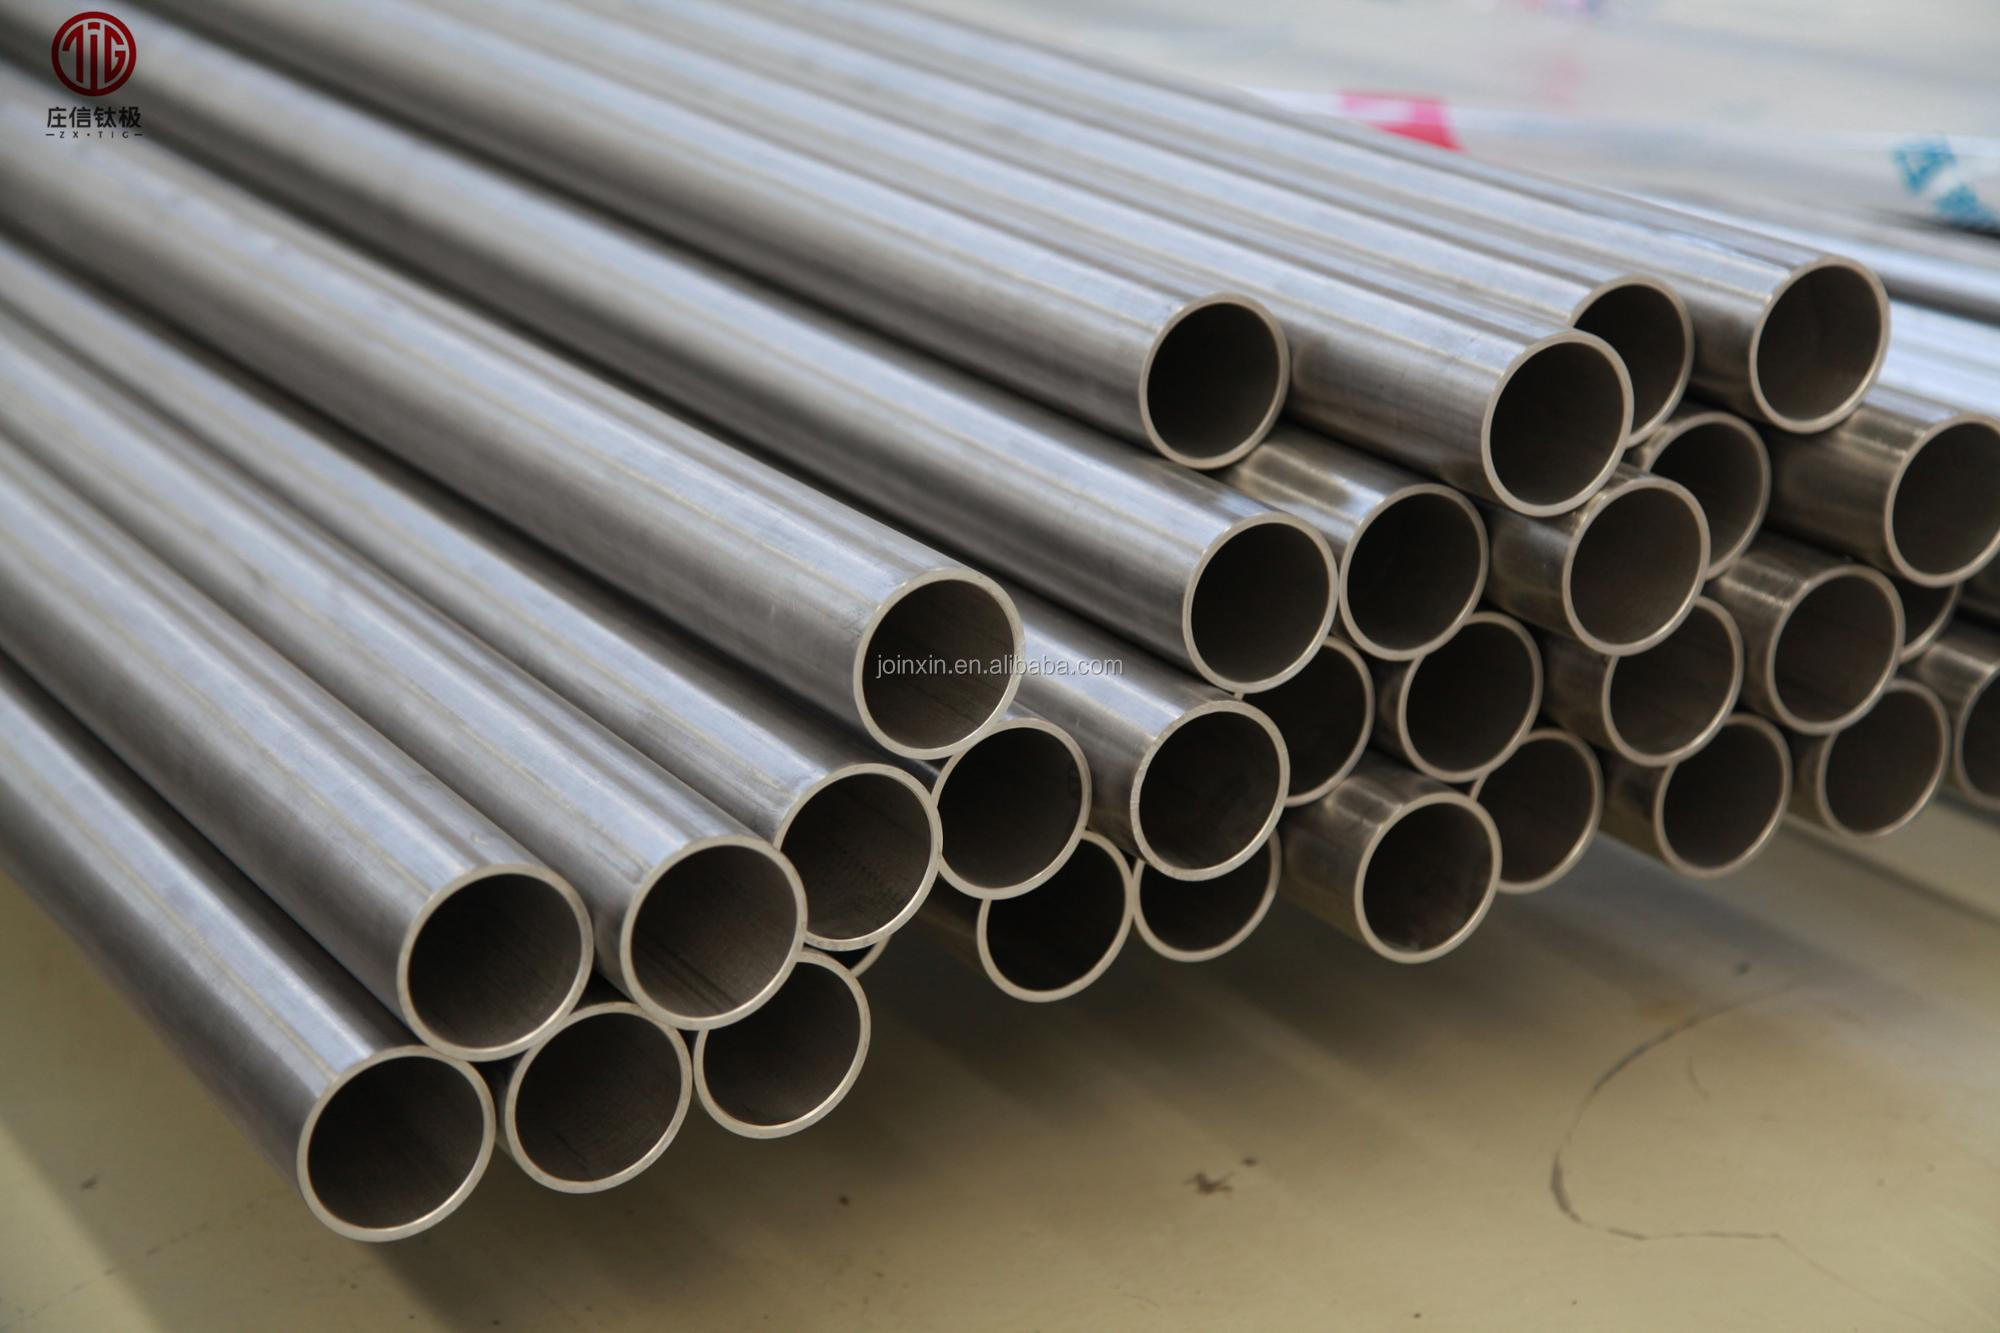 High quality motorcycle Auto GR2  Titanium Exhaust seamless welded pipe tube